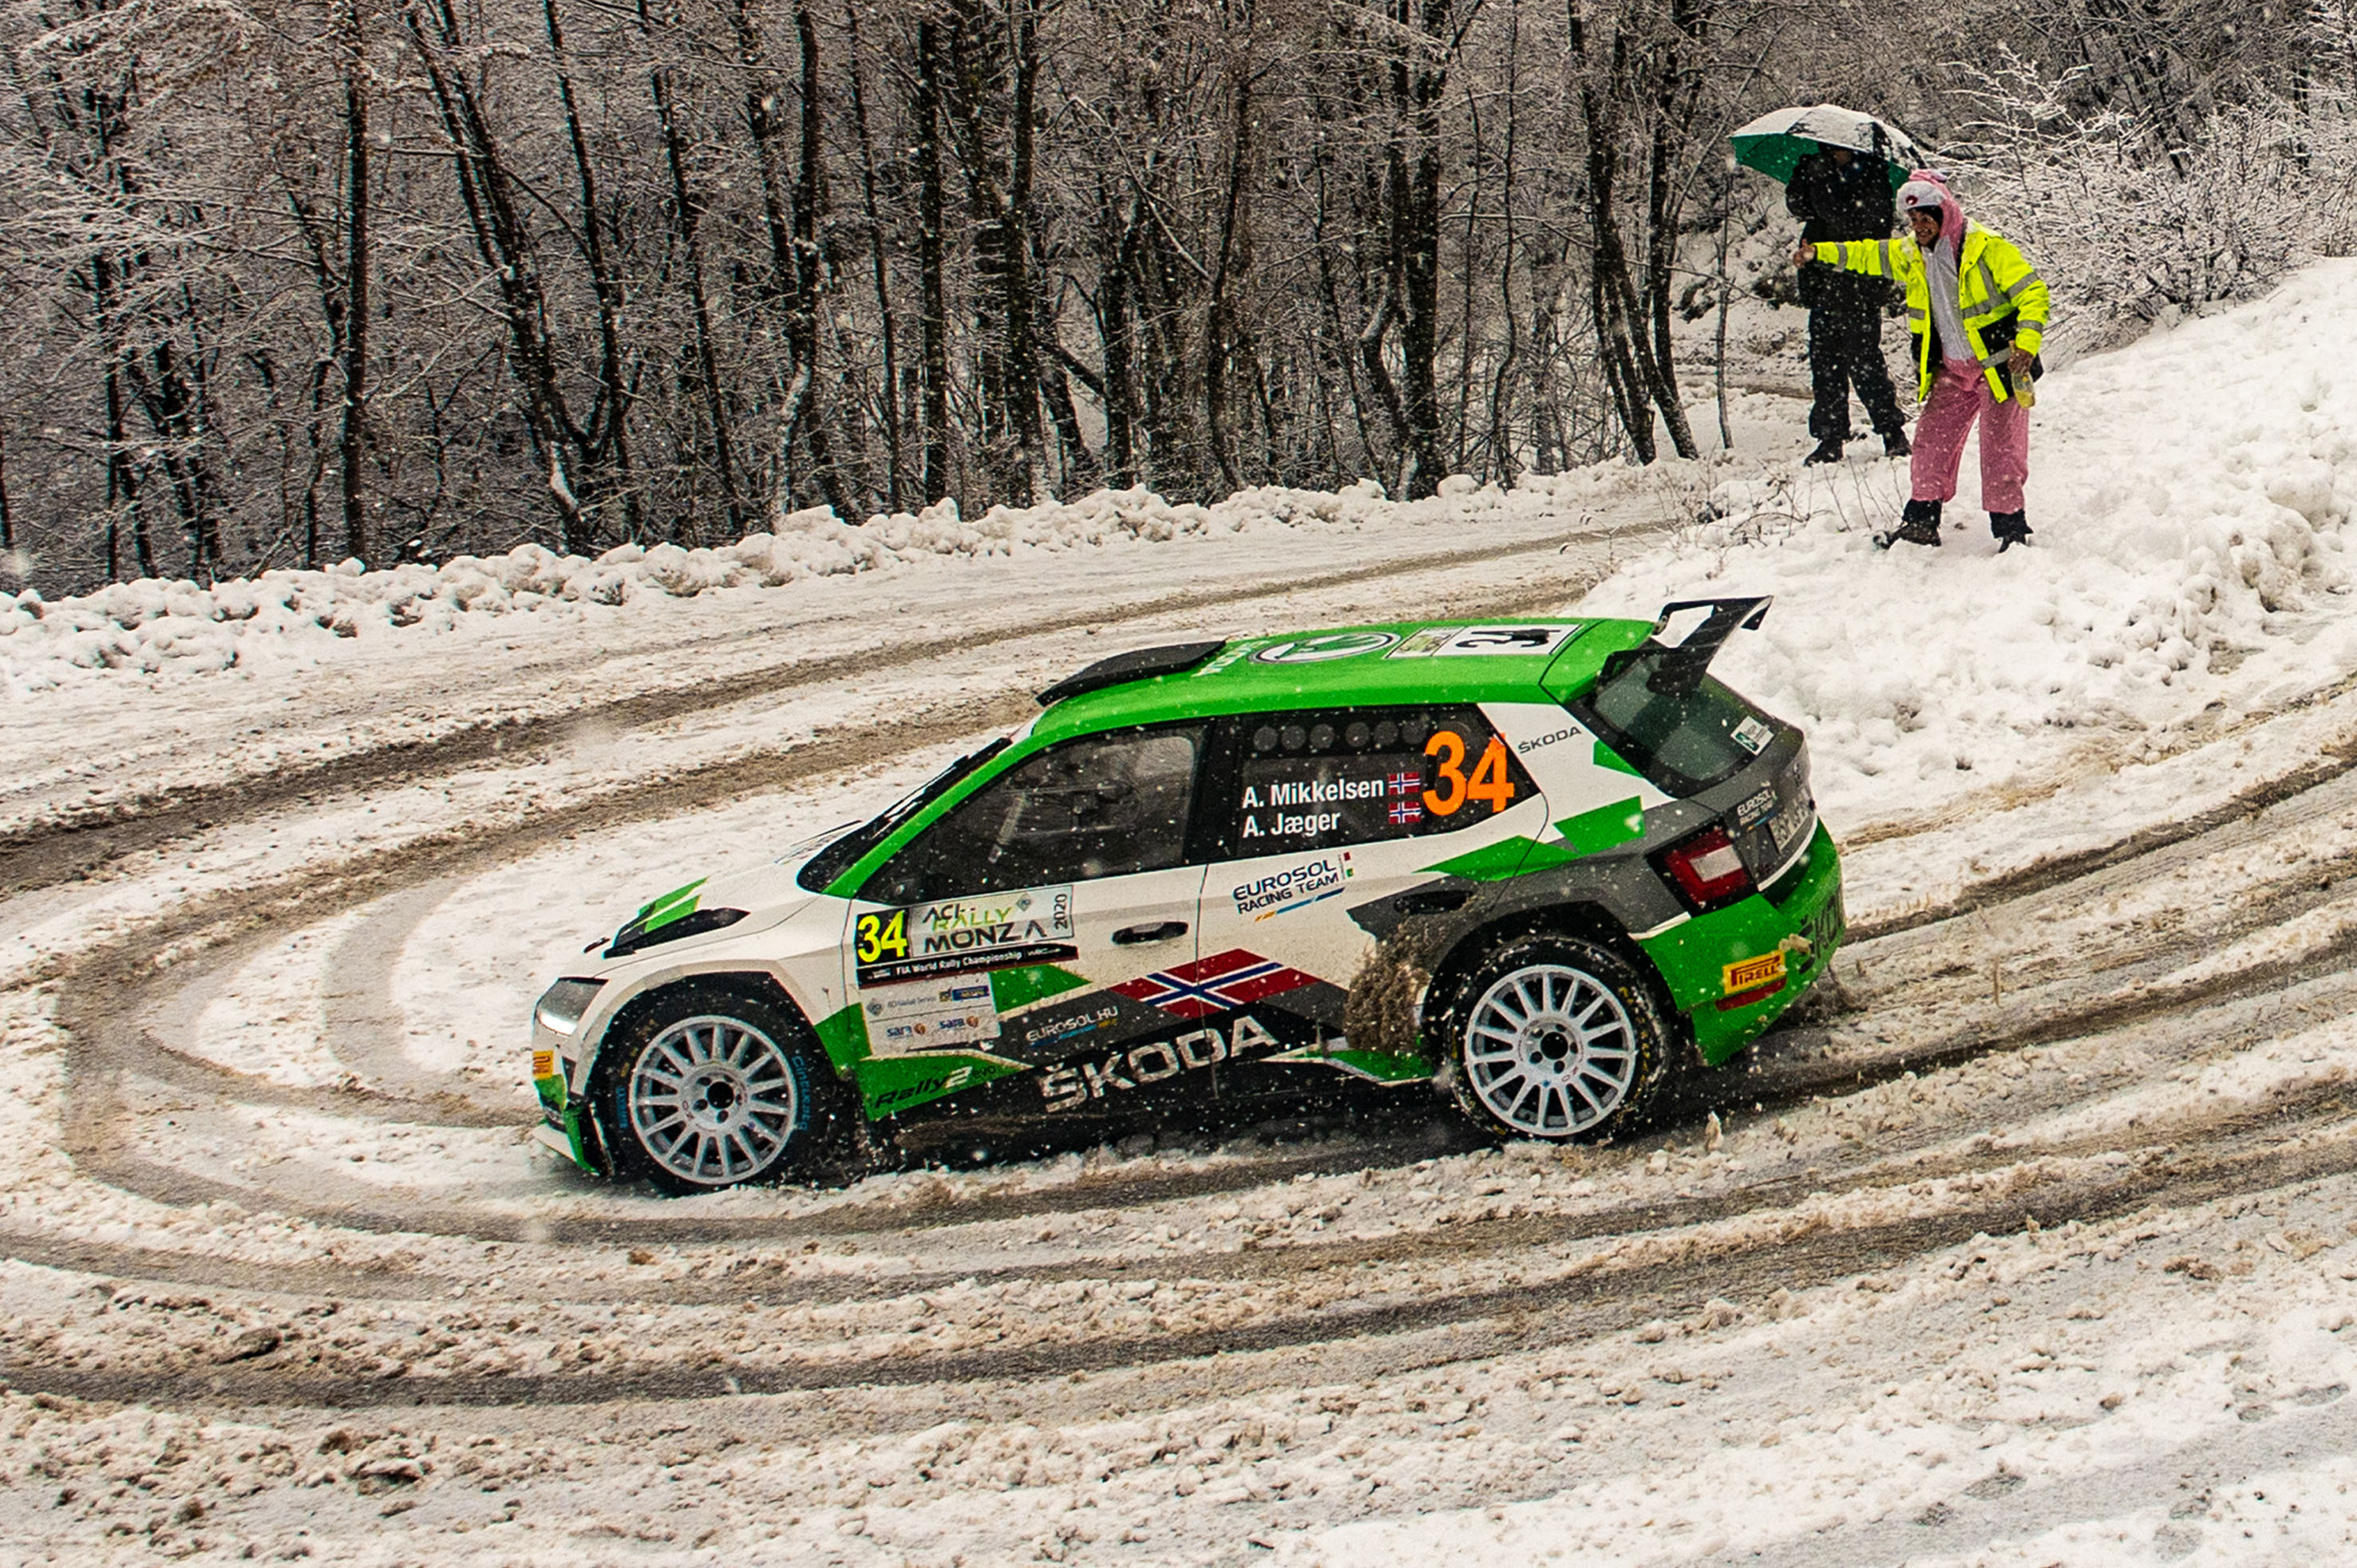 Rallye Monte-Carlo: SKODA FABIA Rally2 evo driver Andreas Mikkelsen among favourites in WRC2 - Image 3